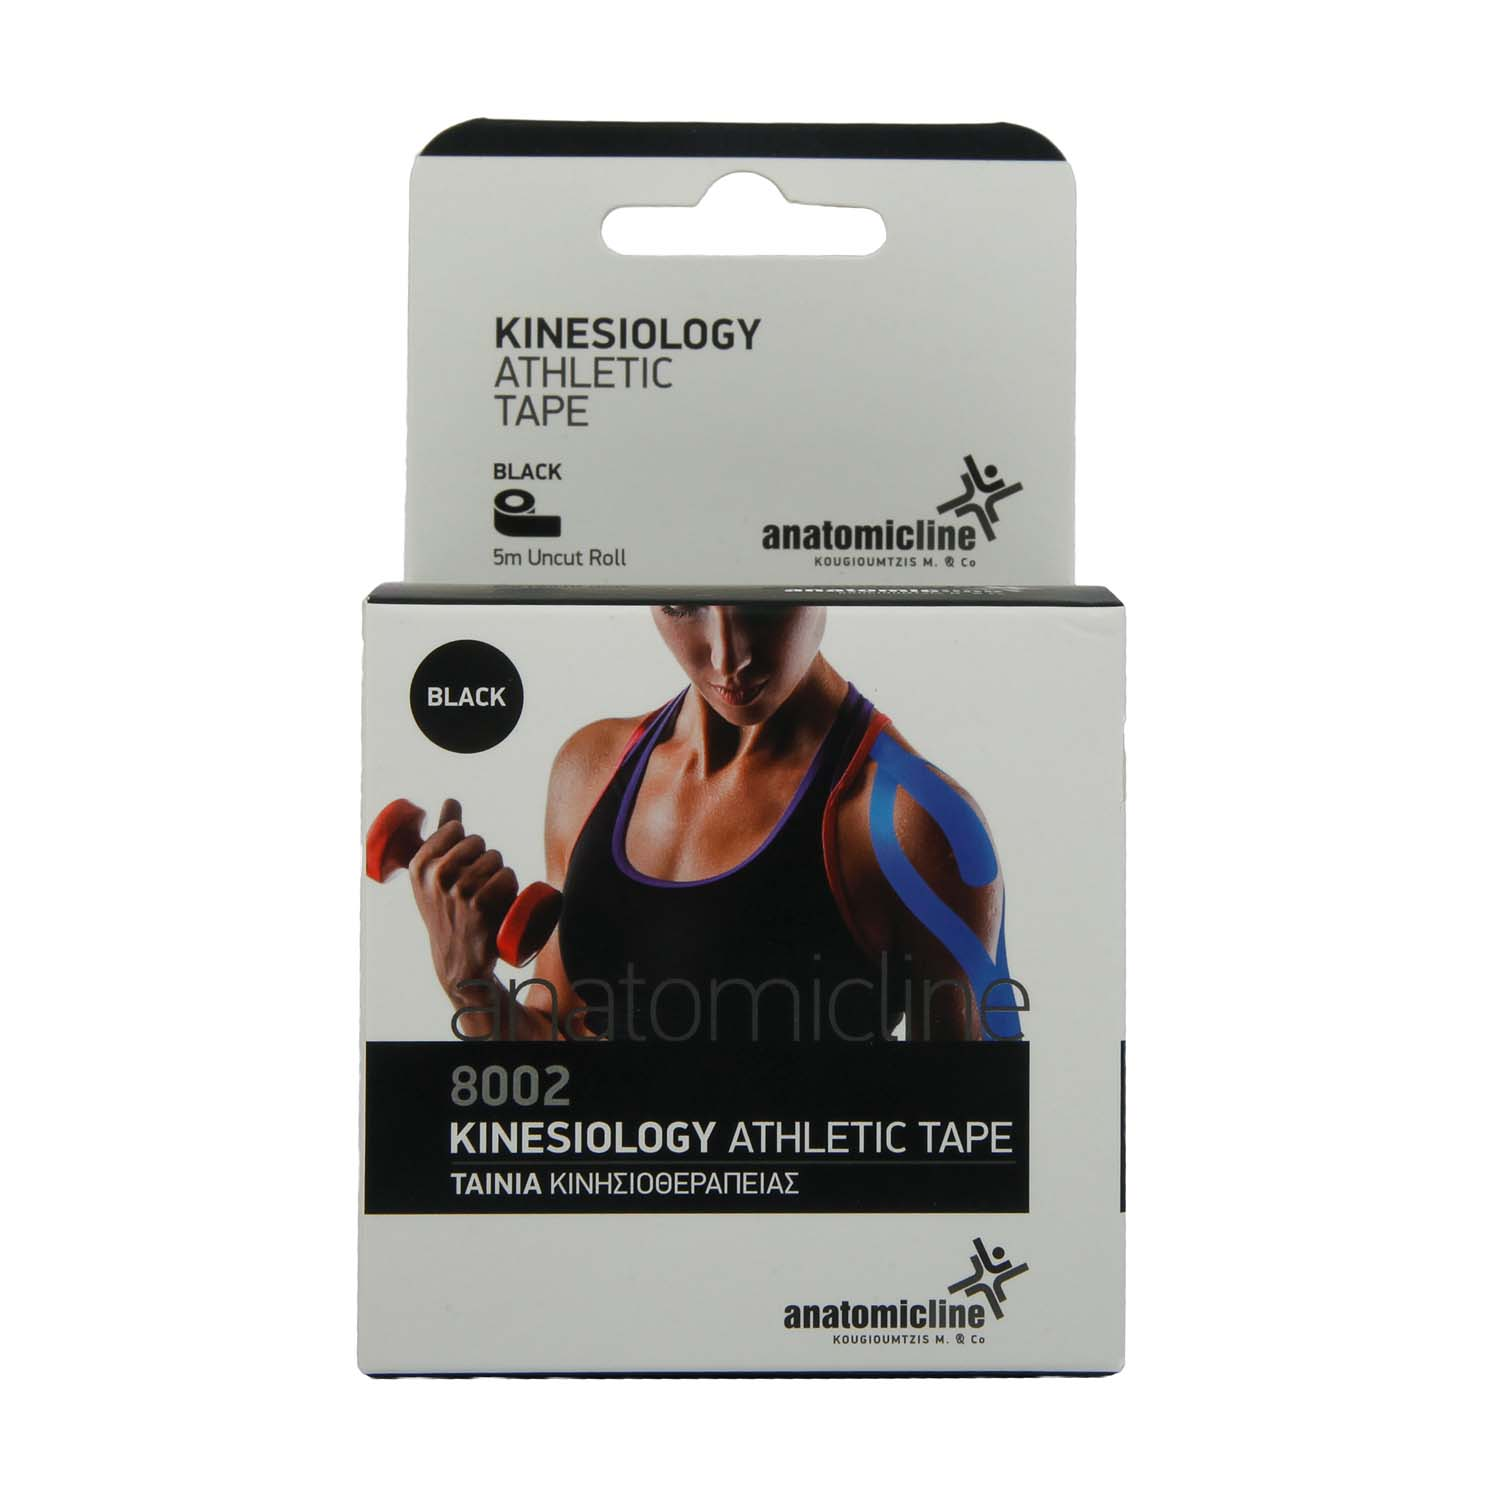 Kinesiology Athletic Tape Black